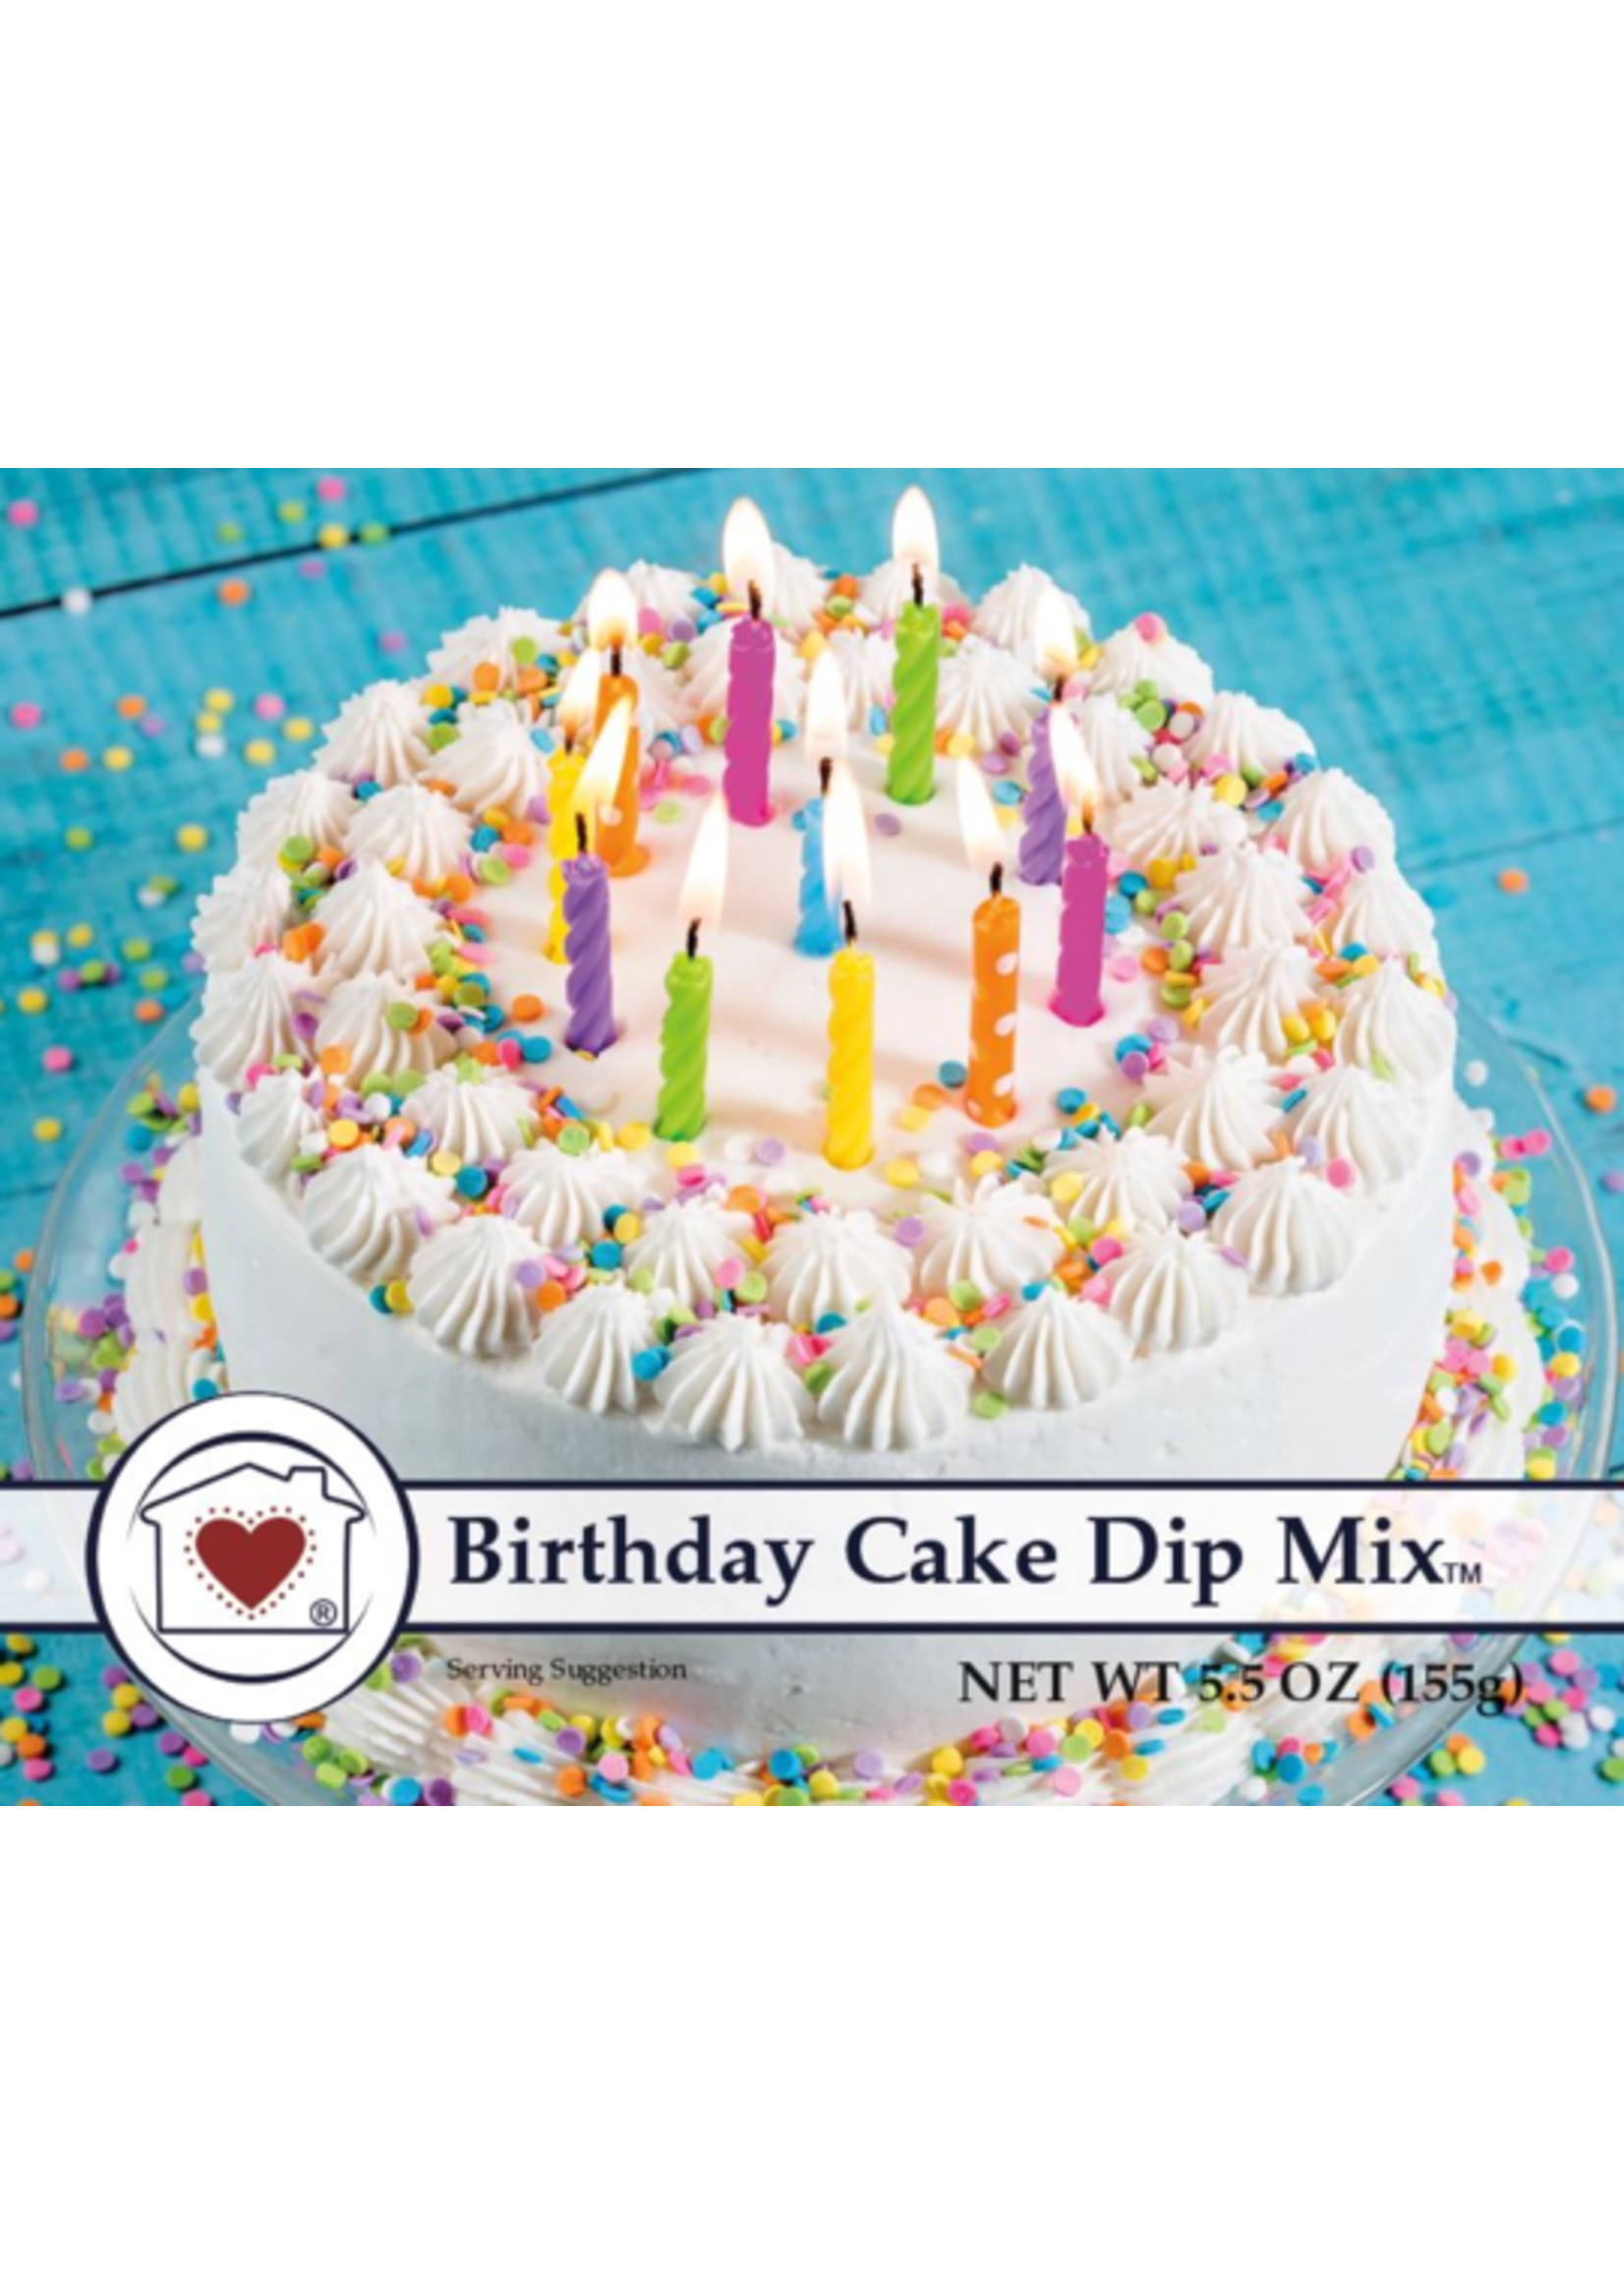 Country Home Creations Birthday Cake Dip Mix